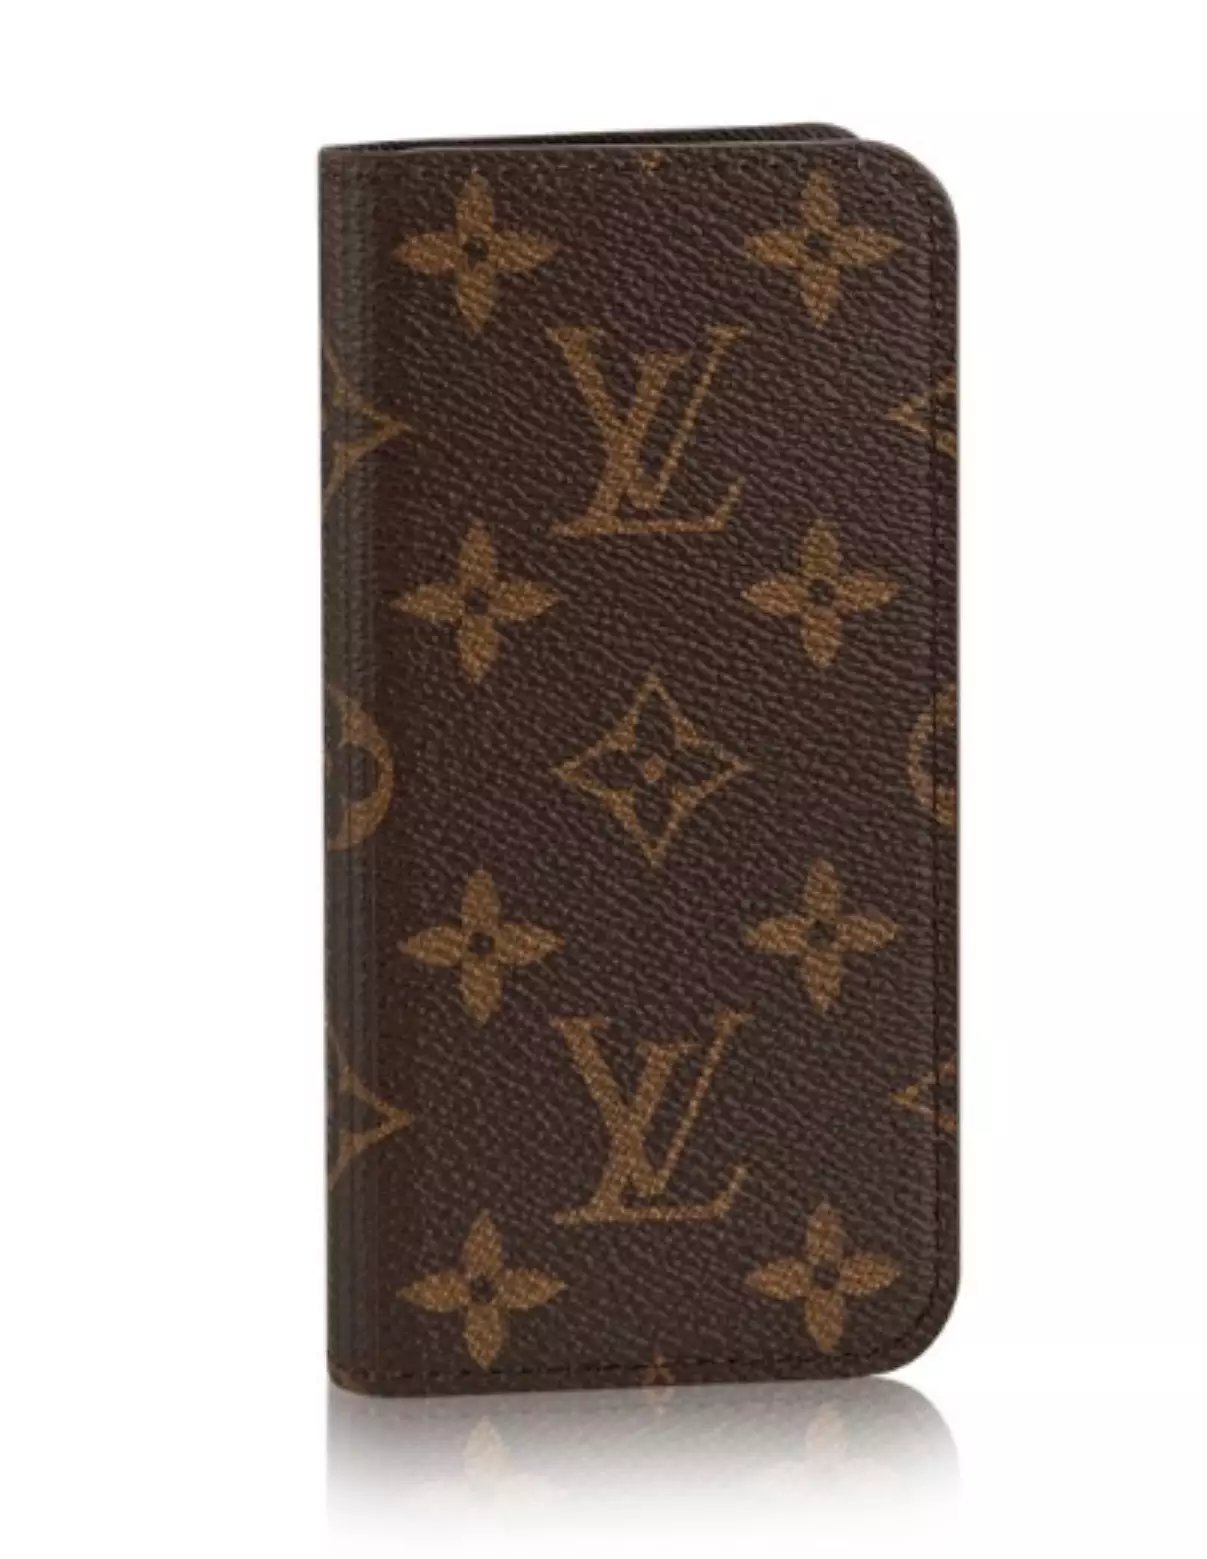 iphone hüllen holzhüllen iphone Louis Vuitton iphone7 Plus hülle iphone 7 Plus alu ca7 coole hüllen iphone 7 Plus handy kappe erstellen iphone virenschutz handy kappe 7lber gestalten original apple iphone hülle